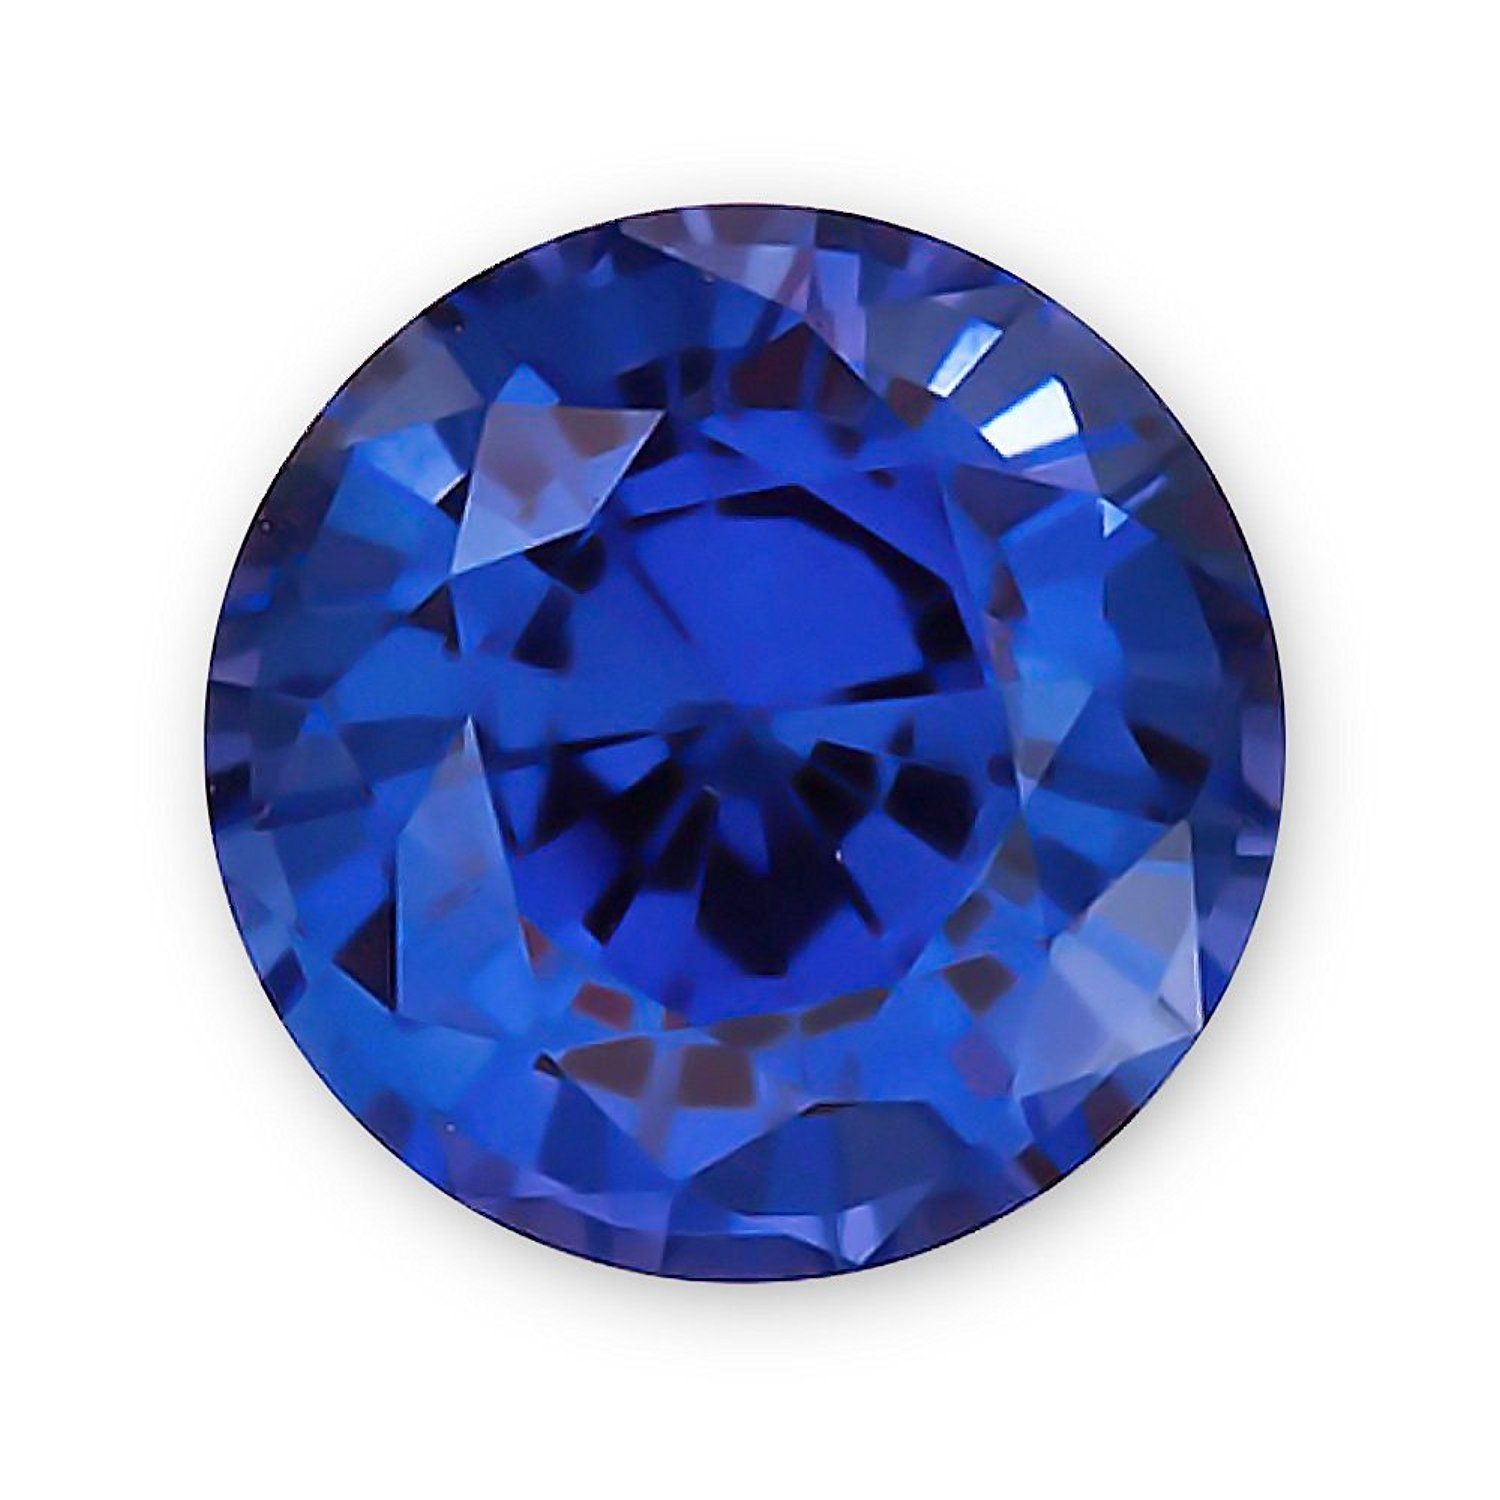 cost gem deep rarer this society than gemstones cushion sapphire a ct tanzanite international blue the ten ring permission diamond custommade of rivals with in used cut that article fine